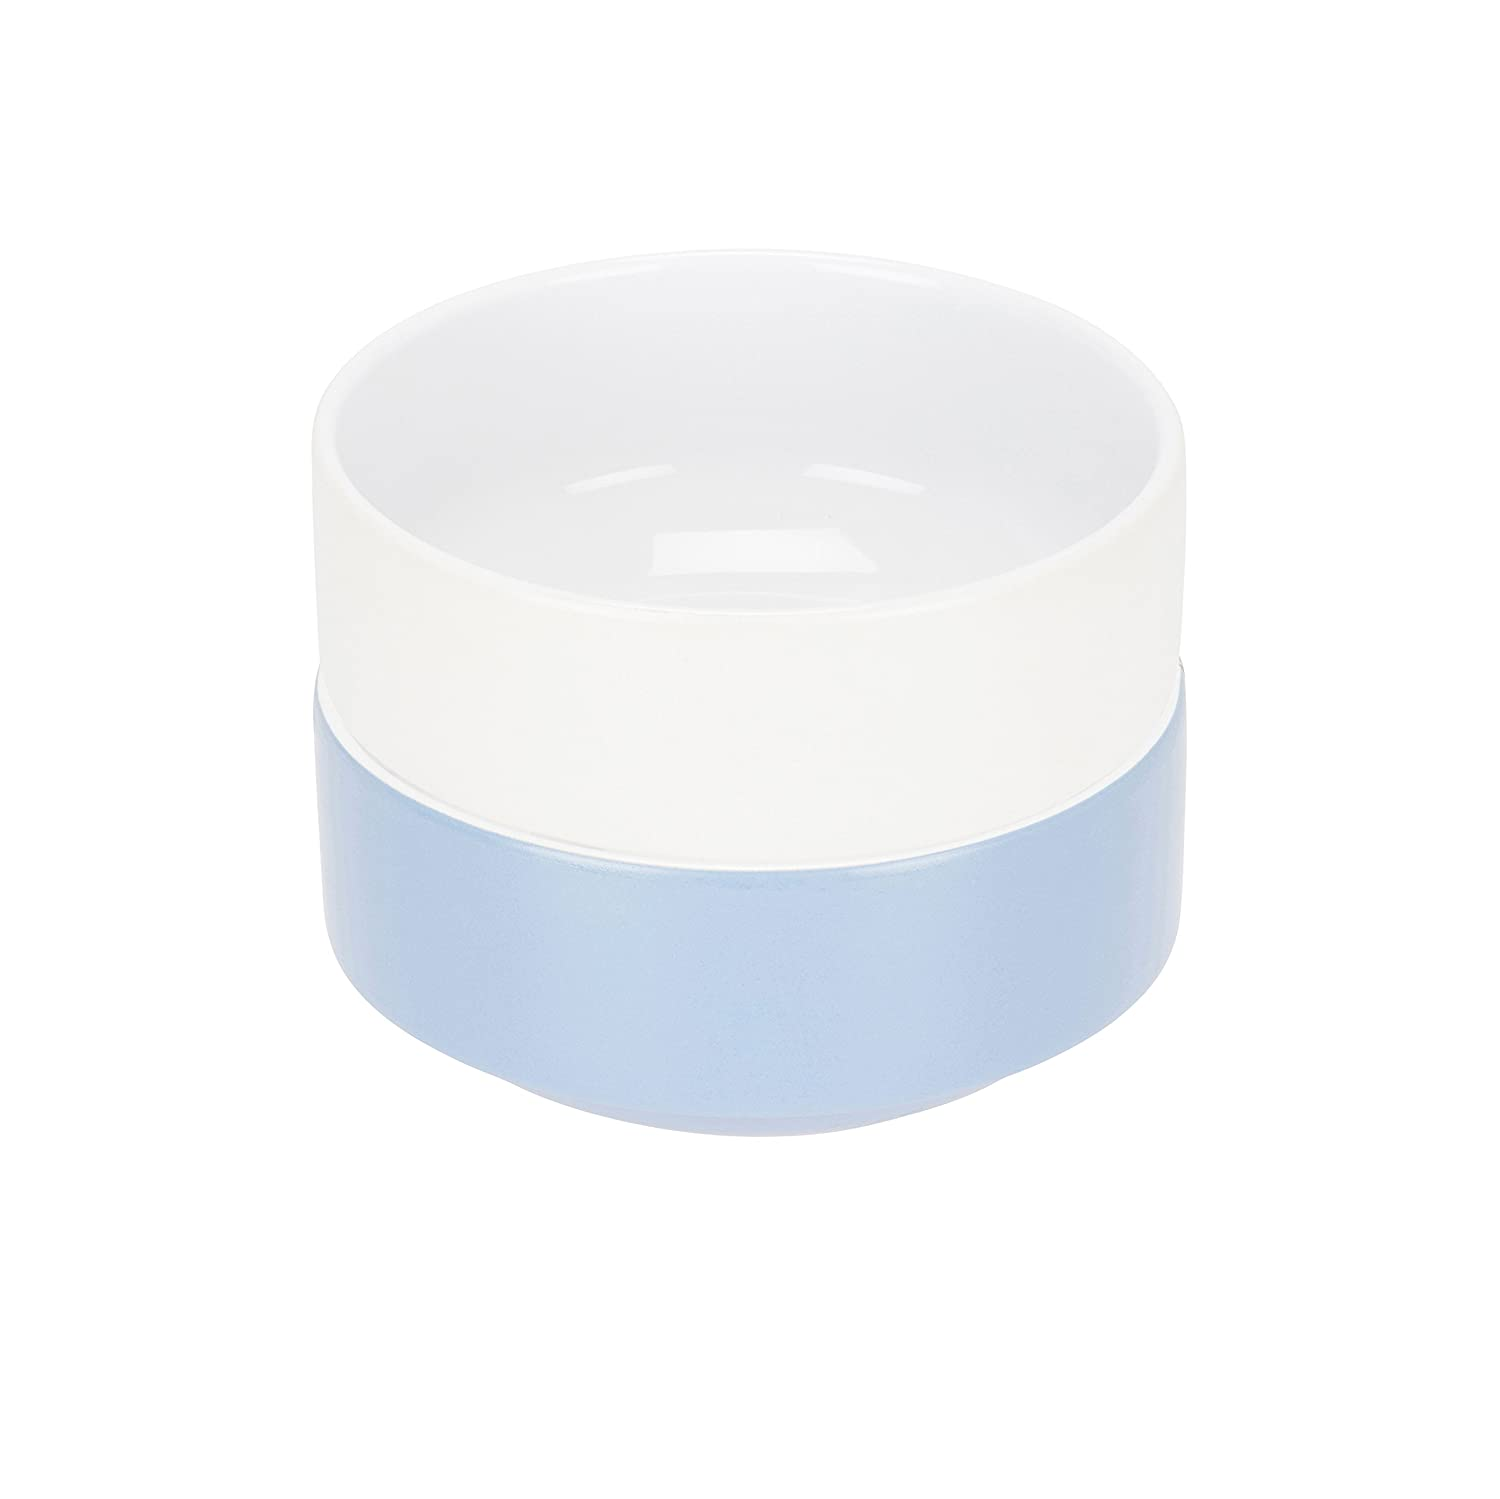 Compact Living Dinnerware - Set of 2 Stackable Bowls - White and Light Blue - 15.2 cm / 6 in